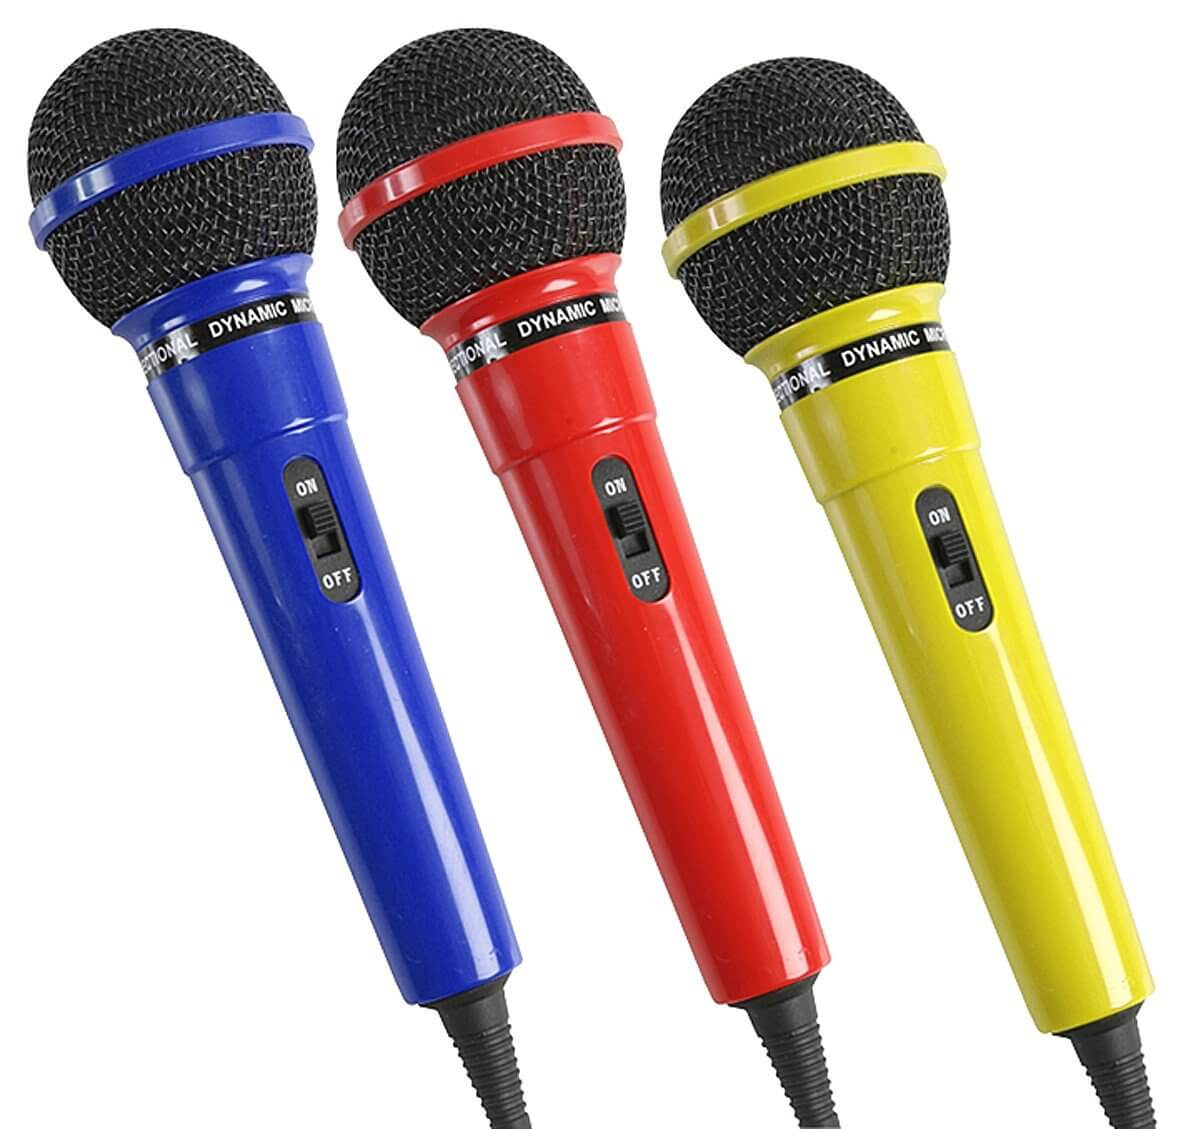 Pulse Dynamic Microphone Plastic Budget